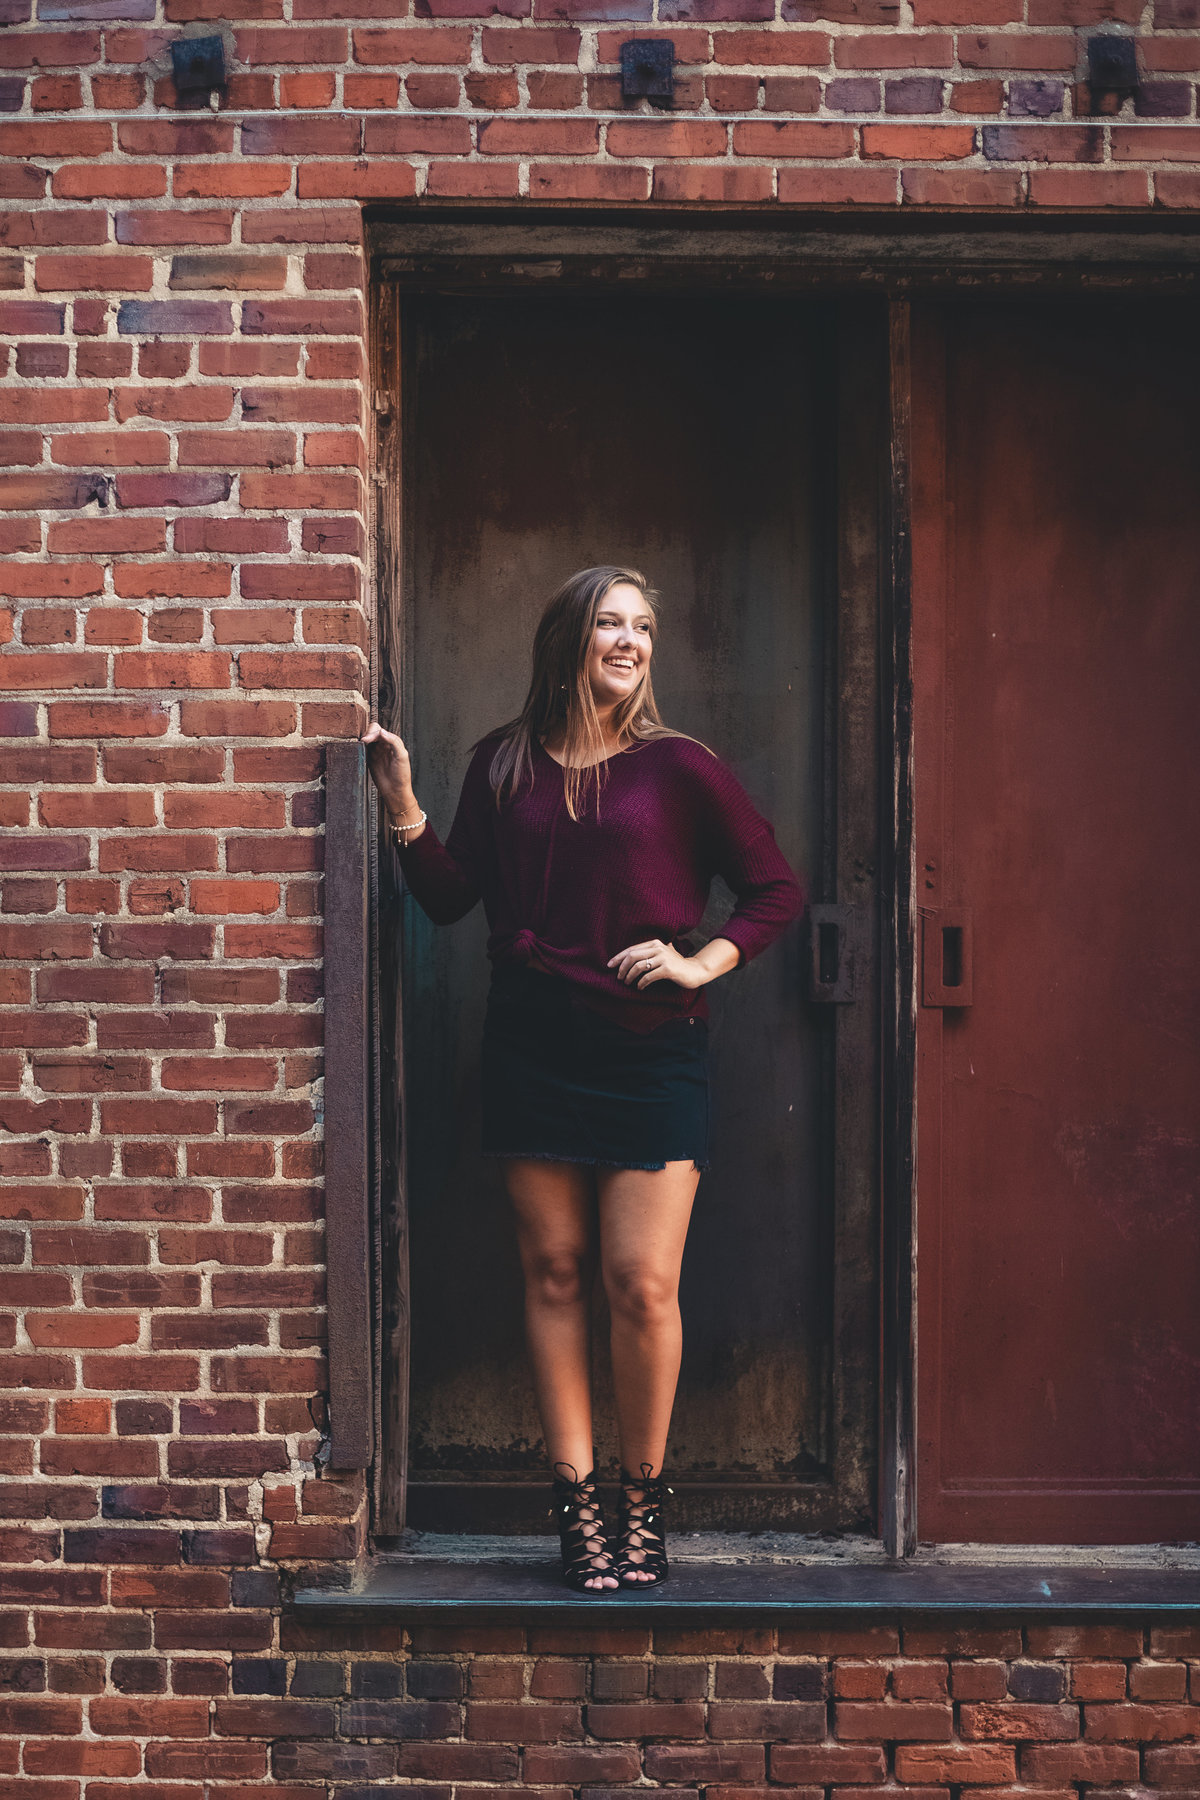 North-Carolina-Senior-Photographer-Lindsay-Corrigan-2019A-8396